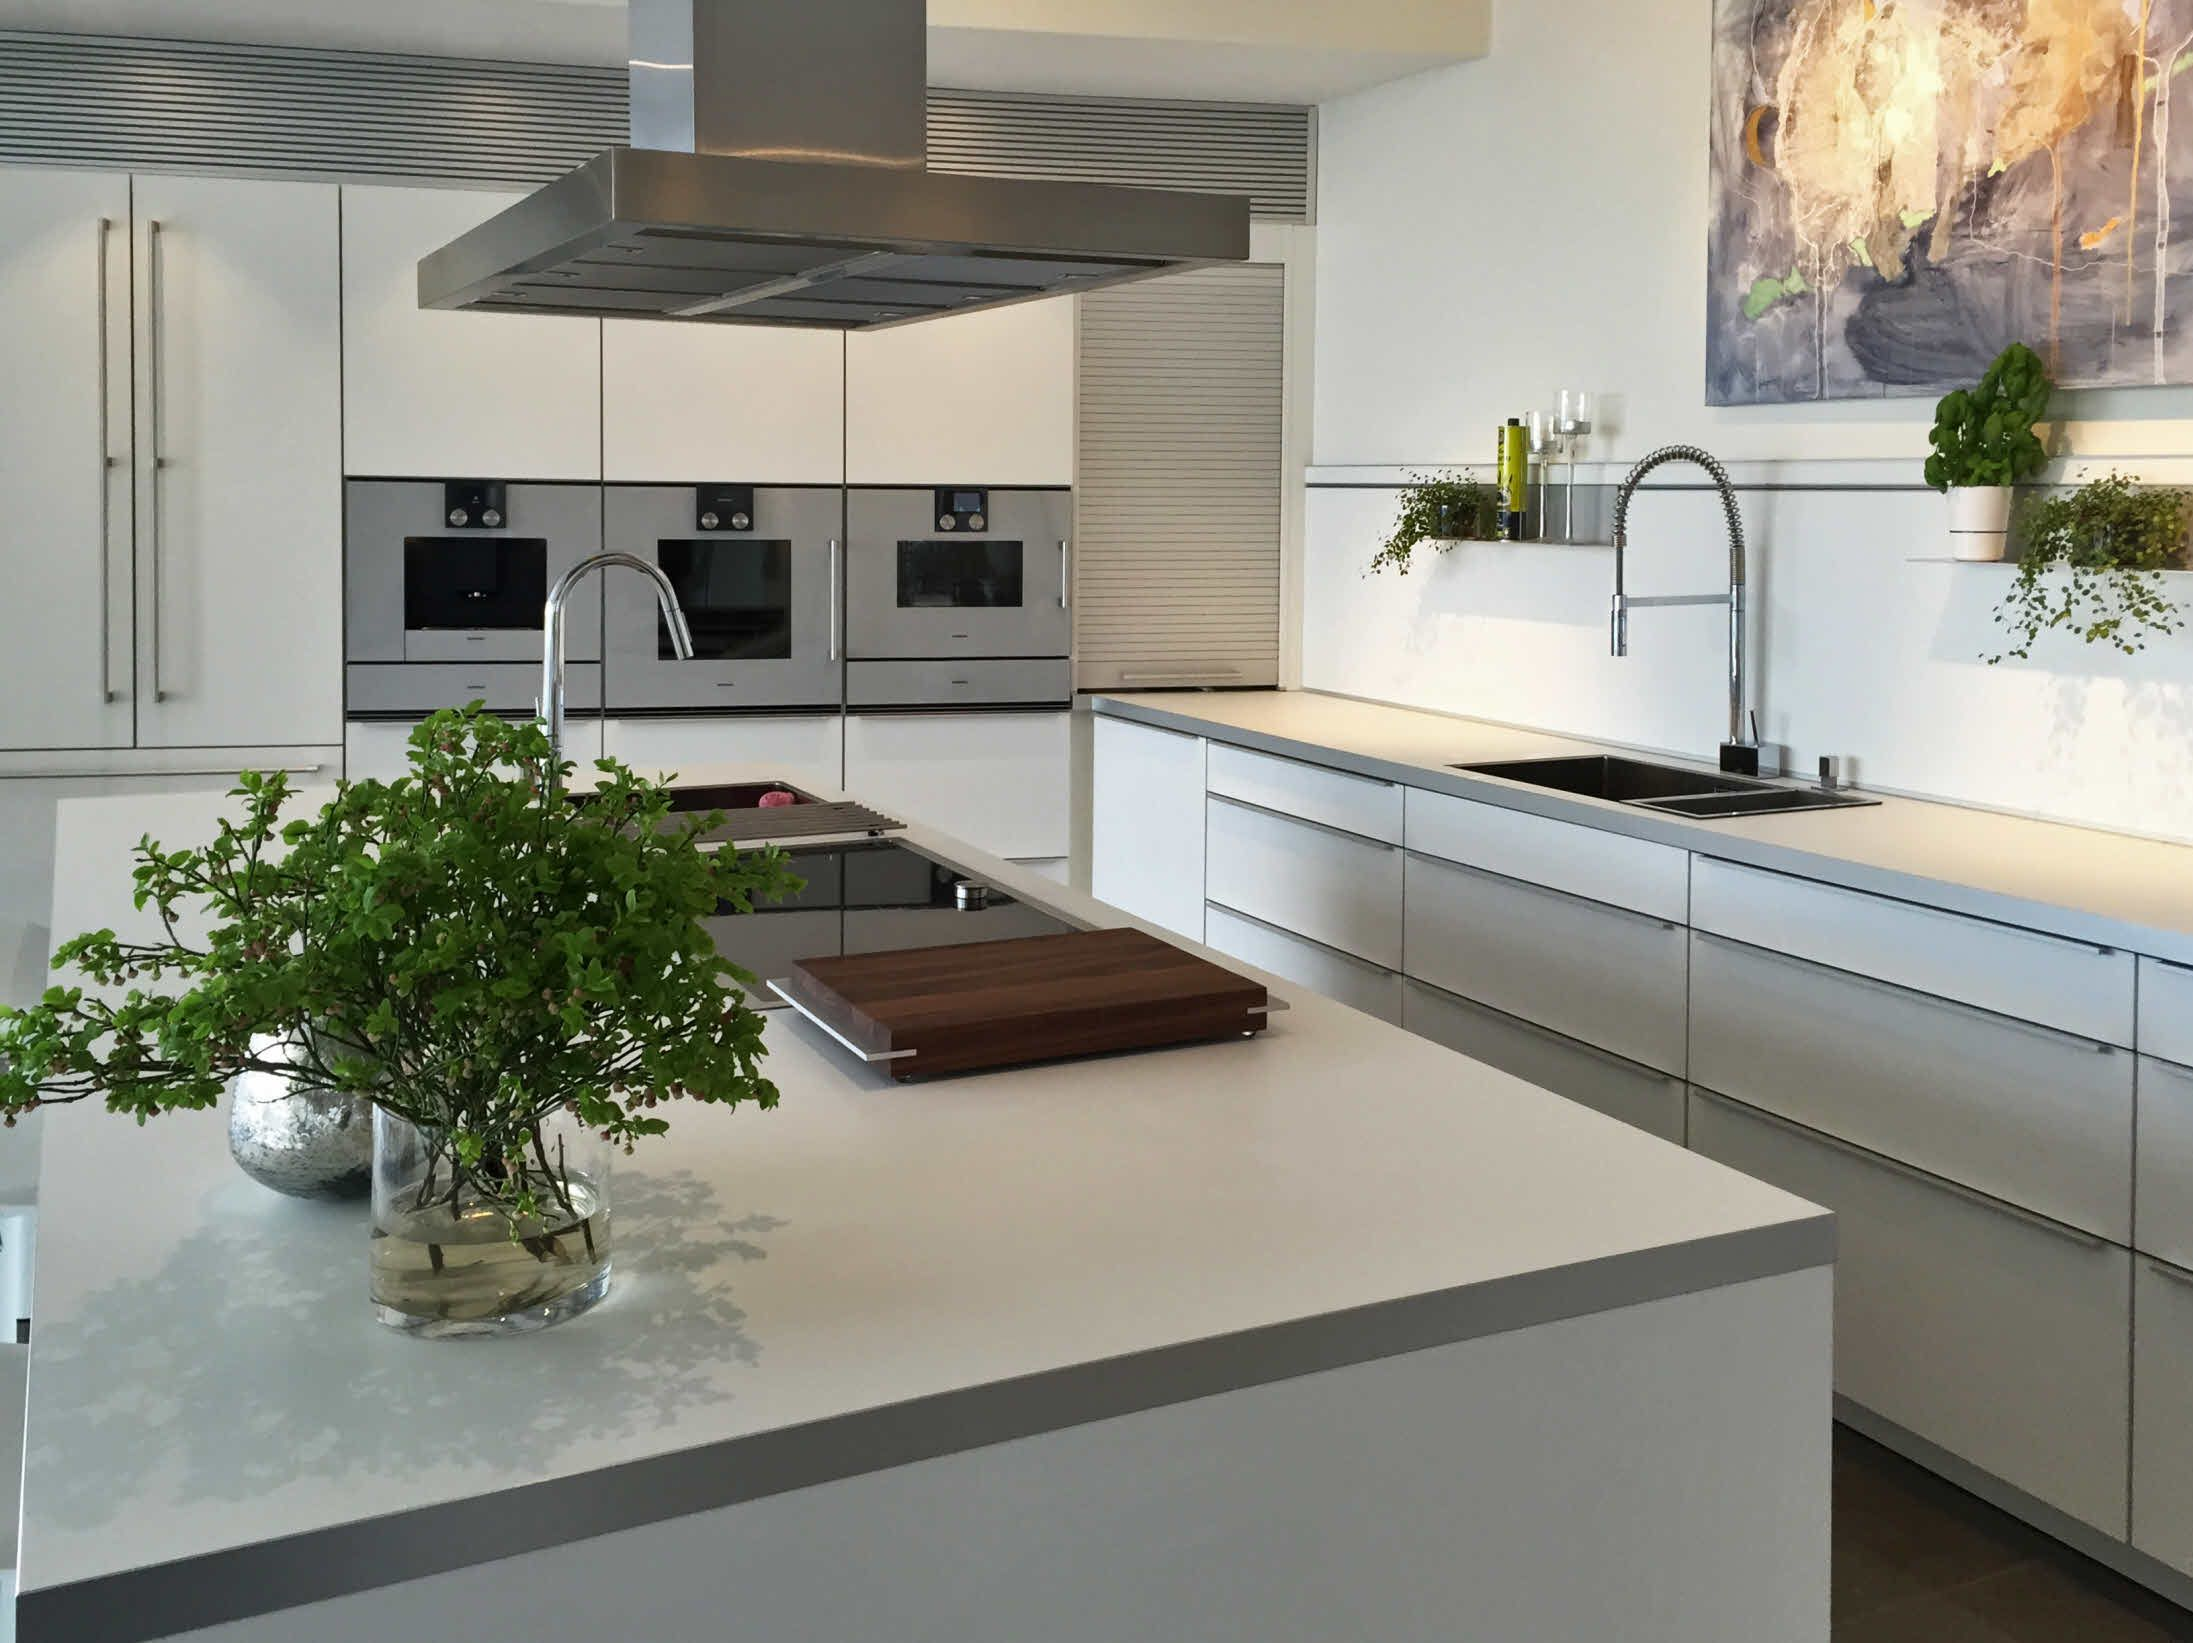 Ballerina Kitchens Stands For Quality Made In Germany Find Your Dream Kitchen Today Discover Now Placard Cuisine Idee Rangement Cuisine Rangement Cuisine